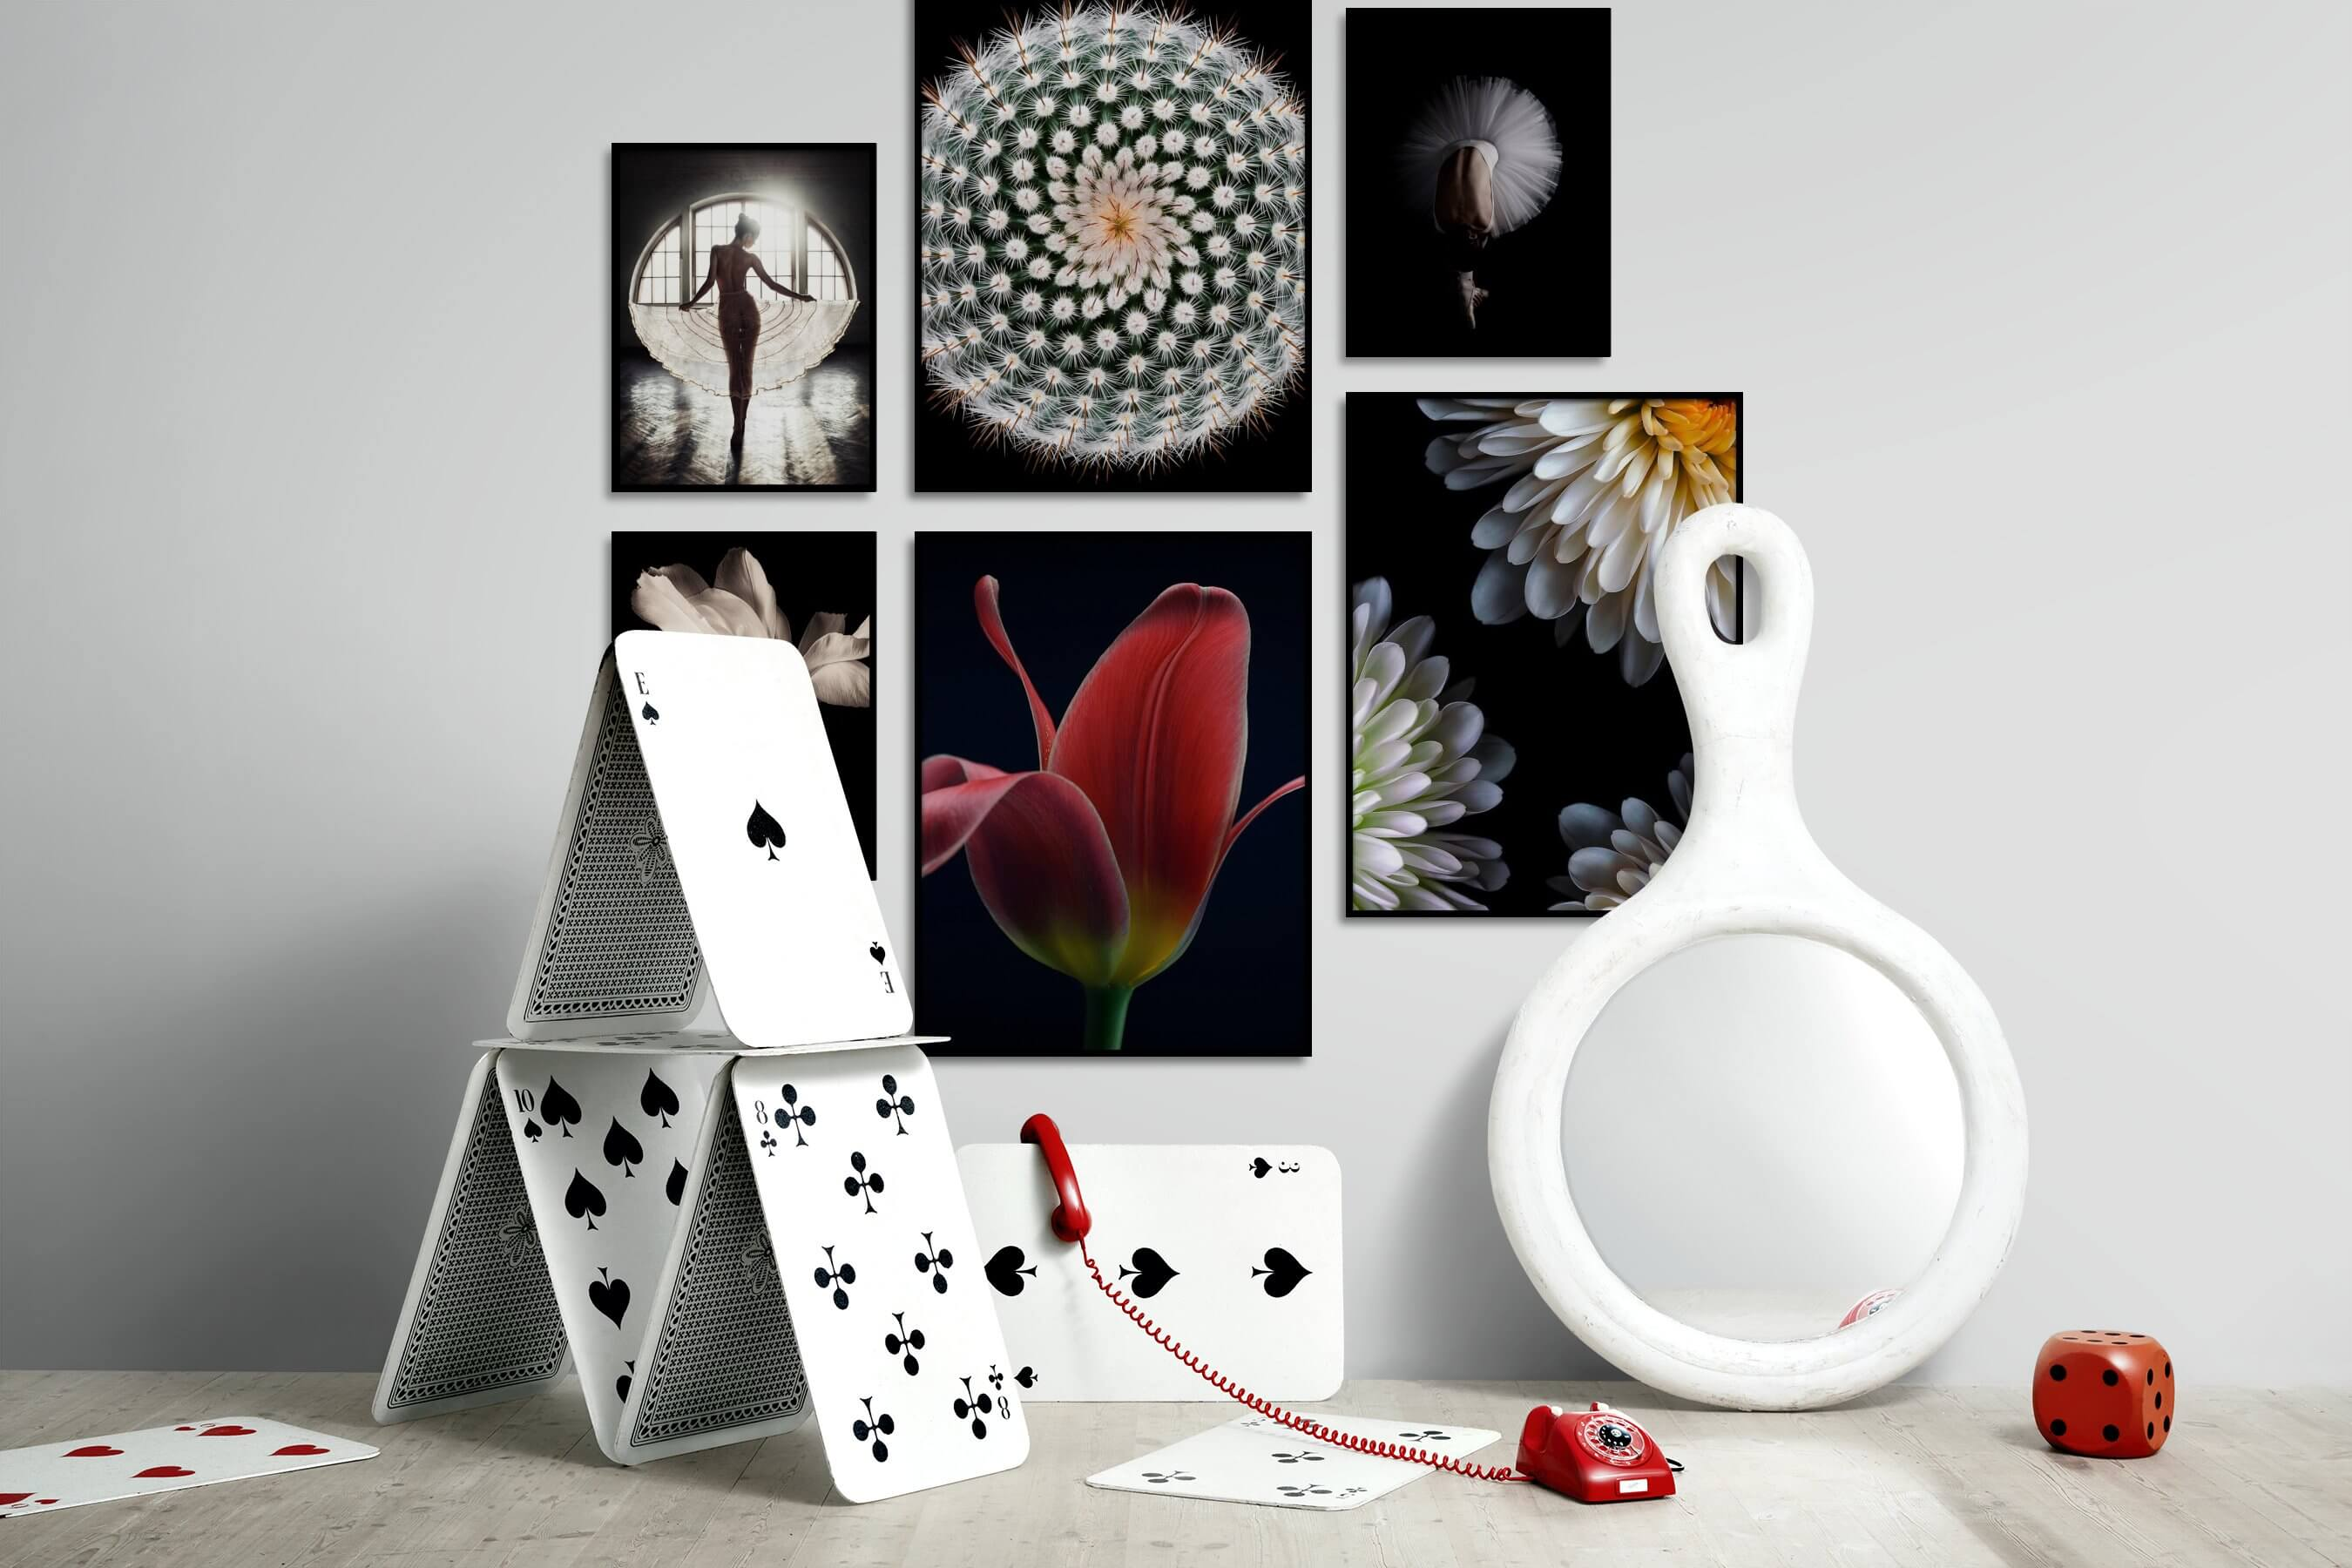 Gallery wall idea with six framed pictures arranged on a wall depicting Fashion & Beauty, Dark Tones, For the Moderate, Flowers & Plants, For the Minimalist, and Mindfulness